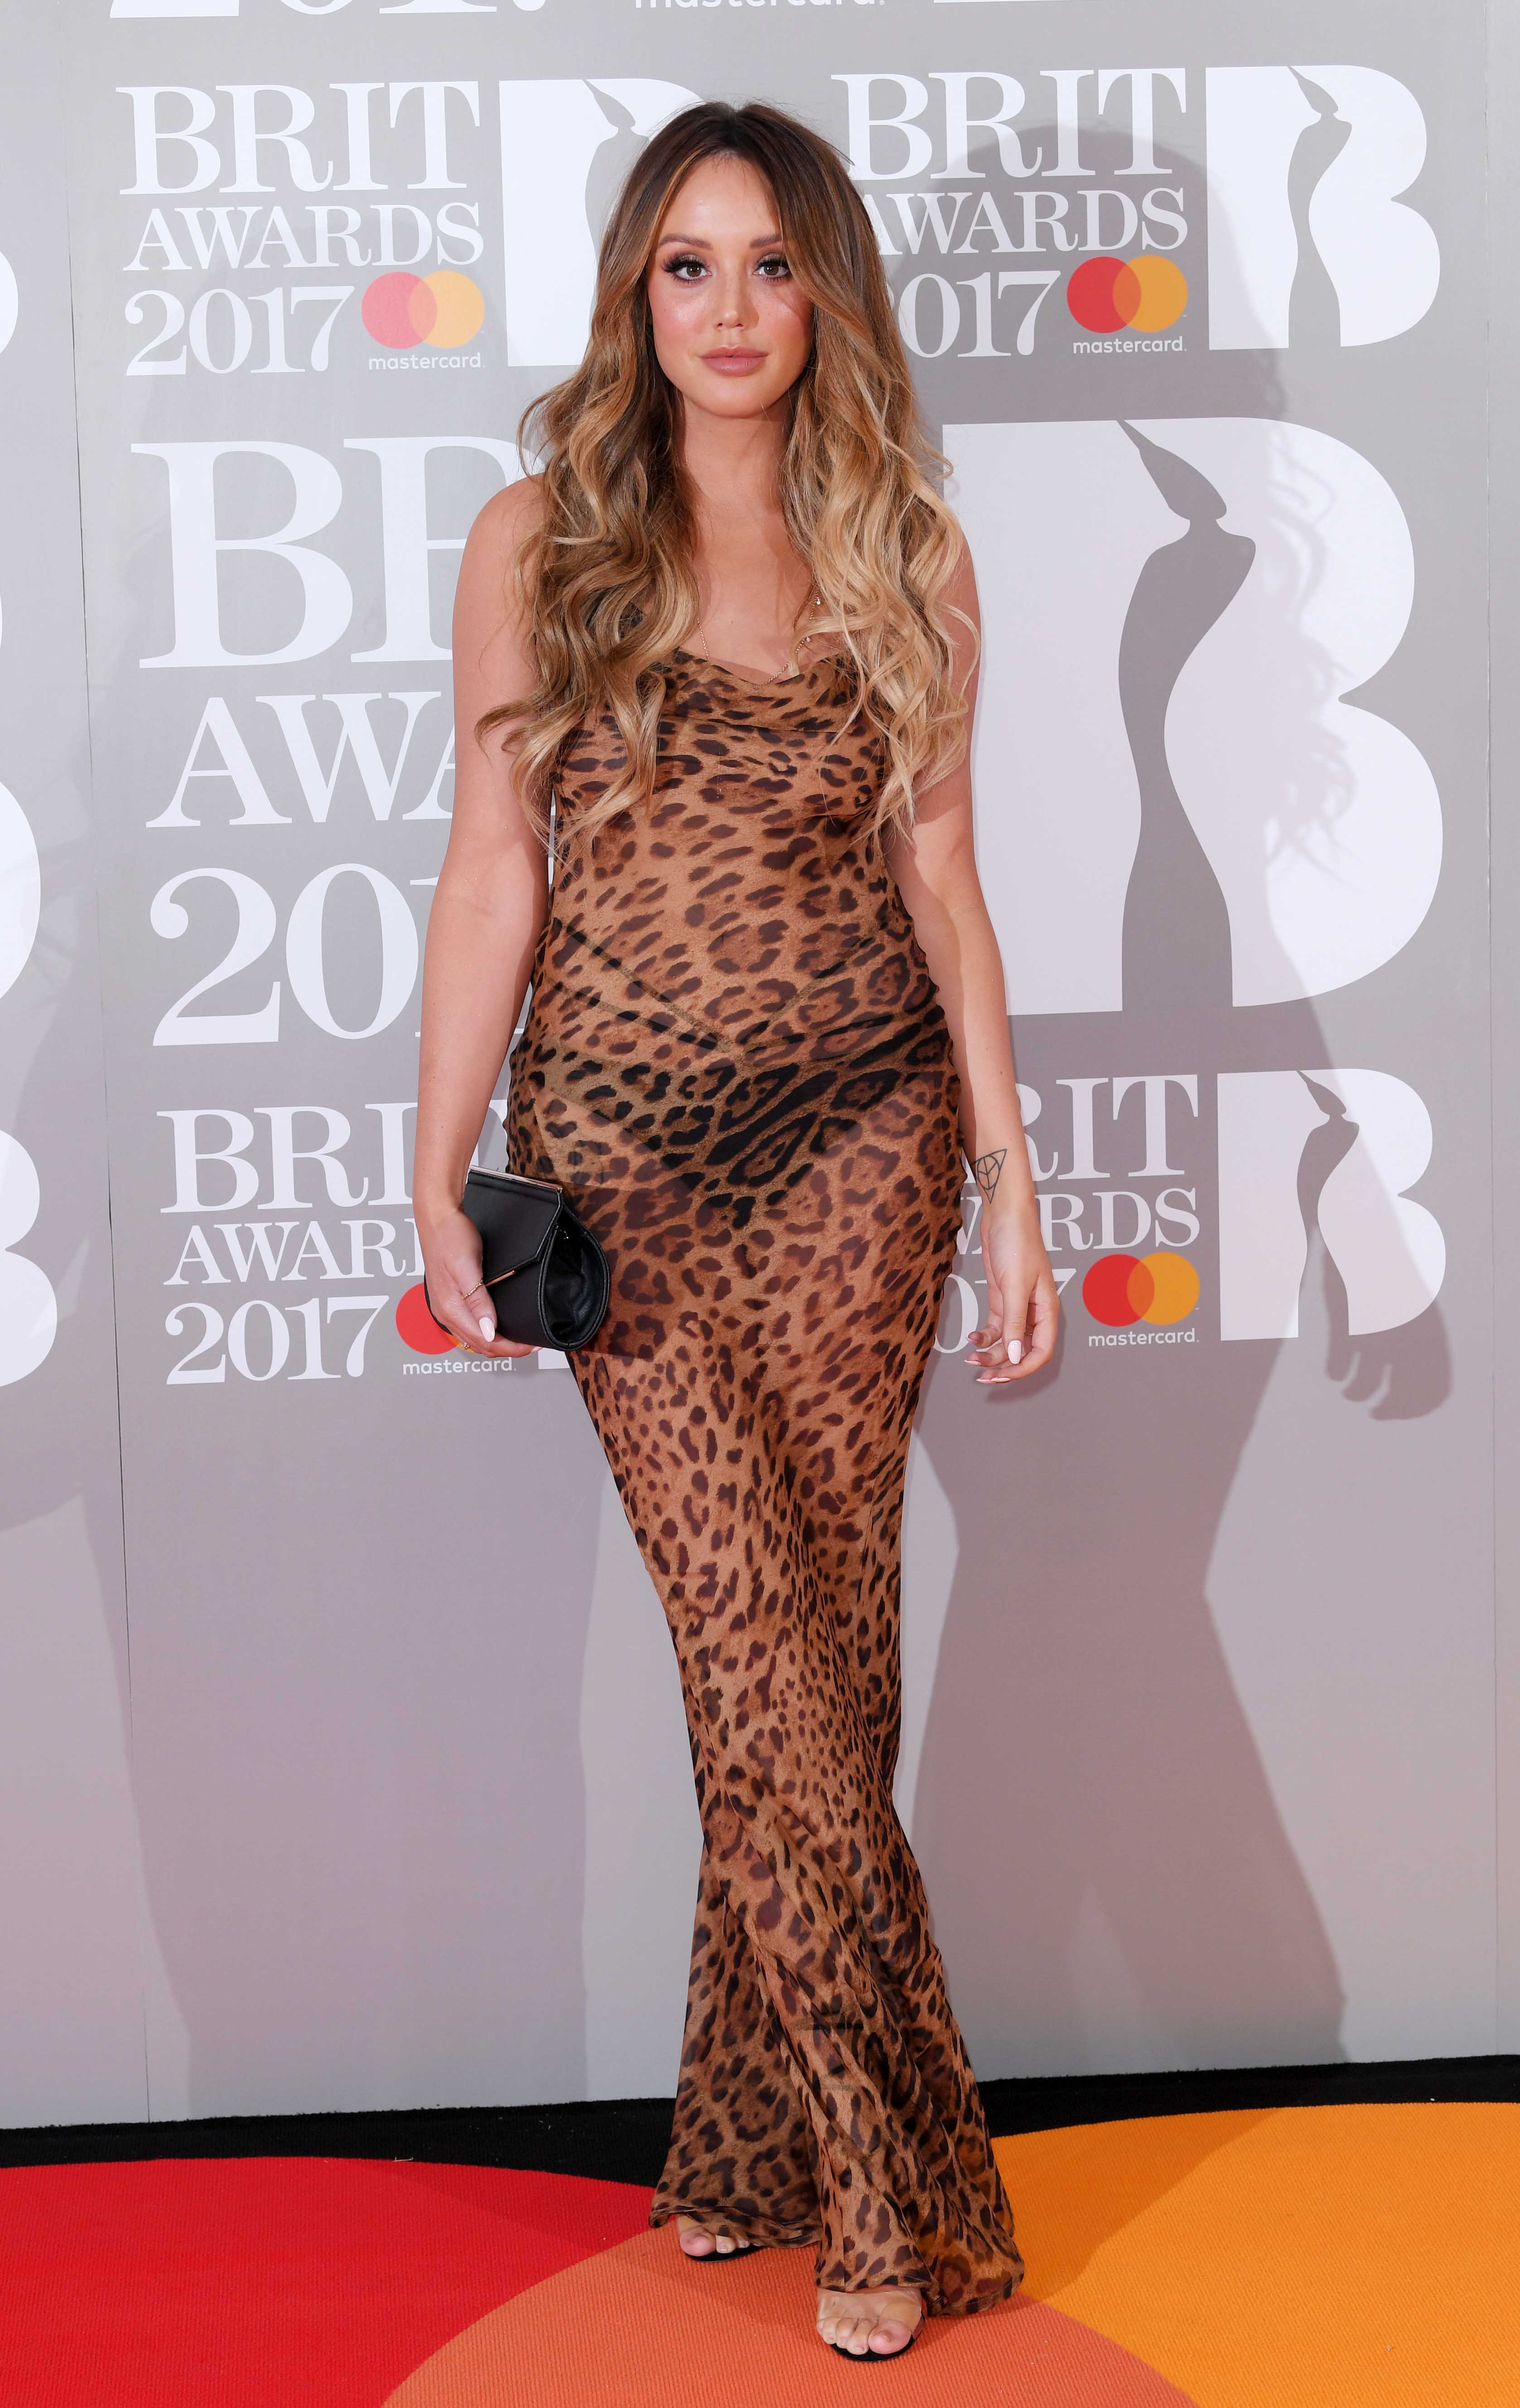 U0026 39 Is She Pregnant   U0026 39  Charlotte Crosby Fans Speculate Over